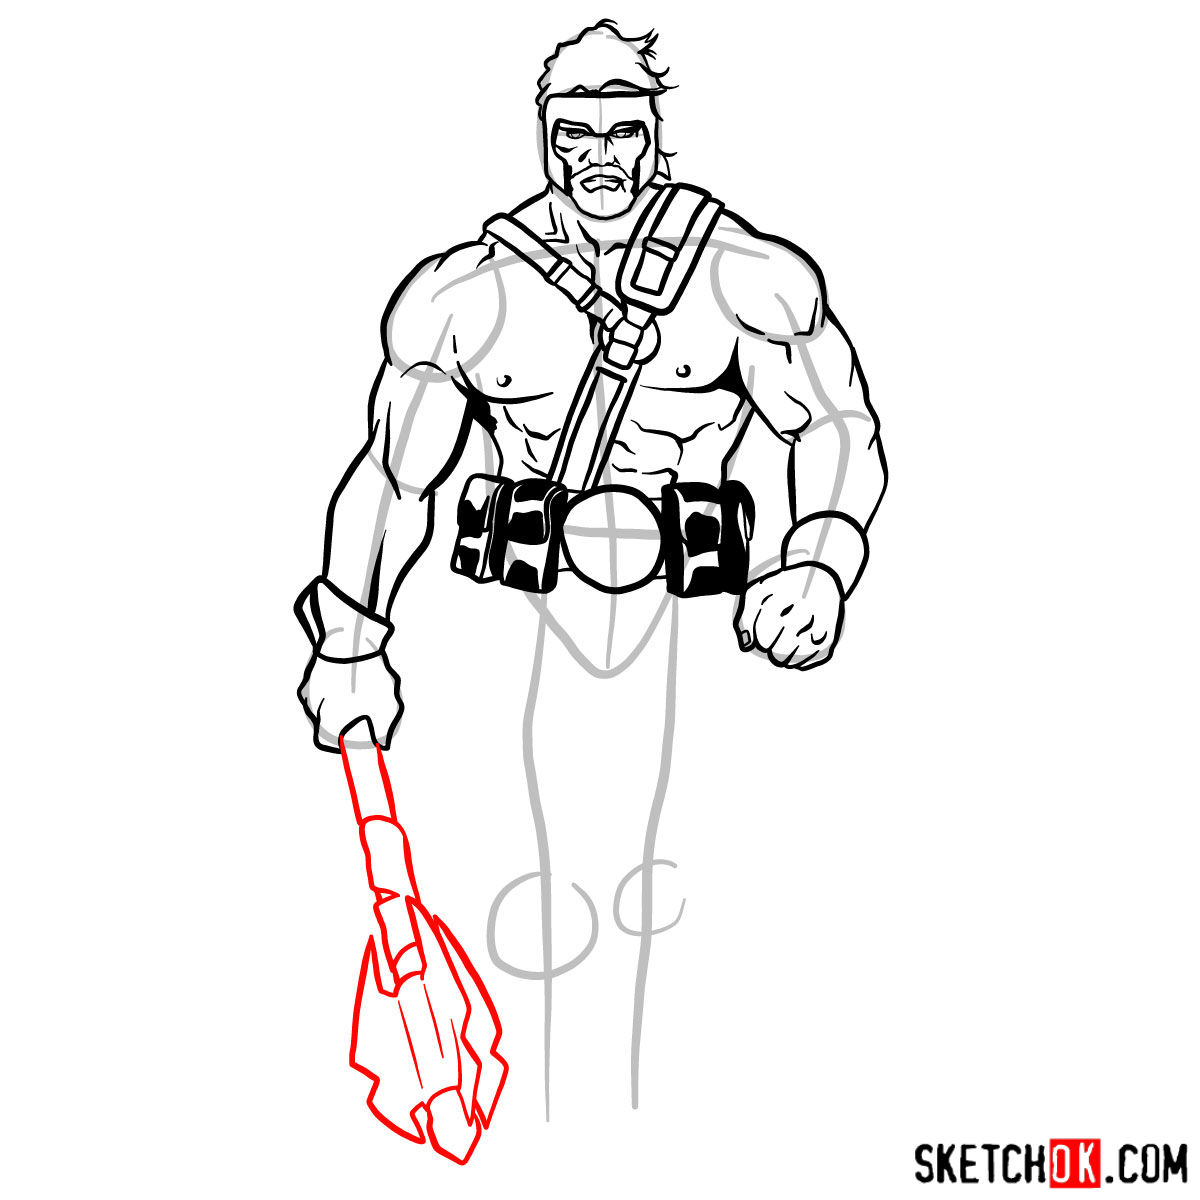 How to draw Hercules - Marvel Comics hero - step 10